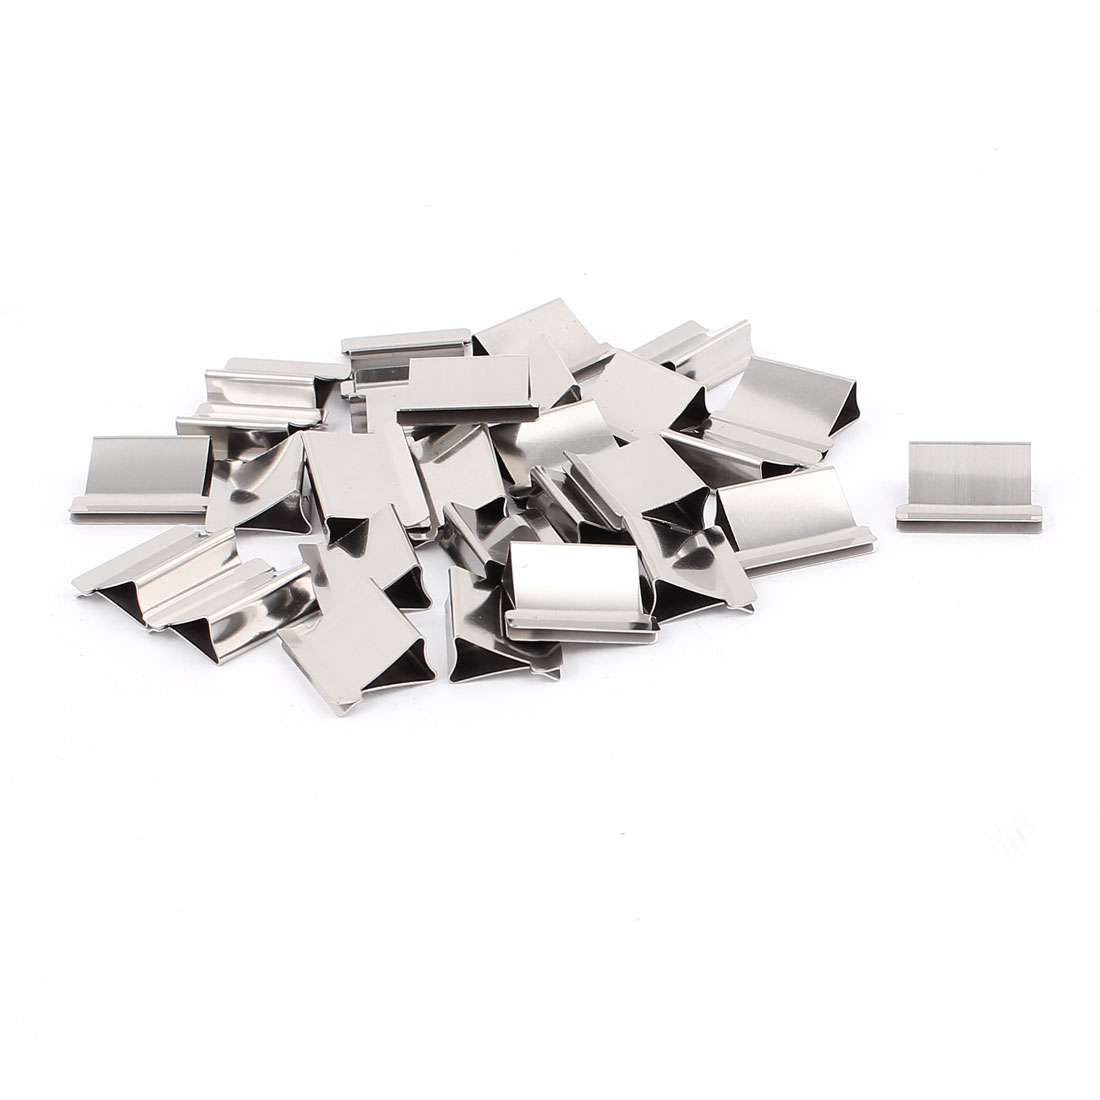 Metal Stapler Dispenser Refills Paper Clam Clip 30 Pcs